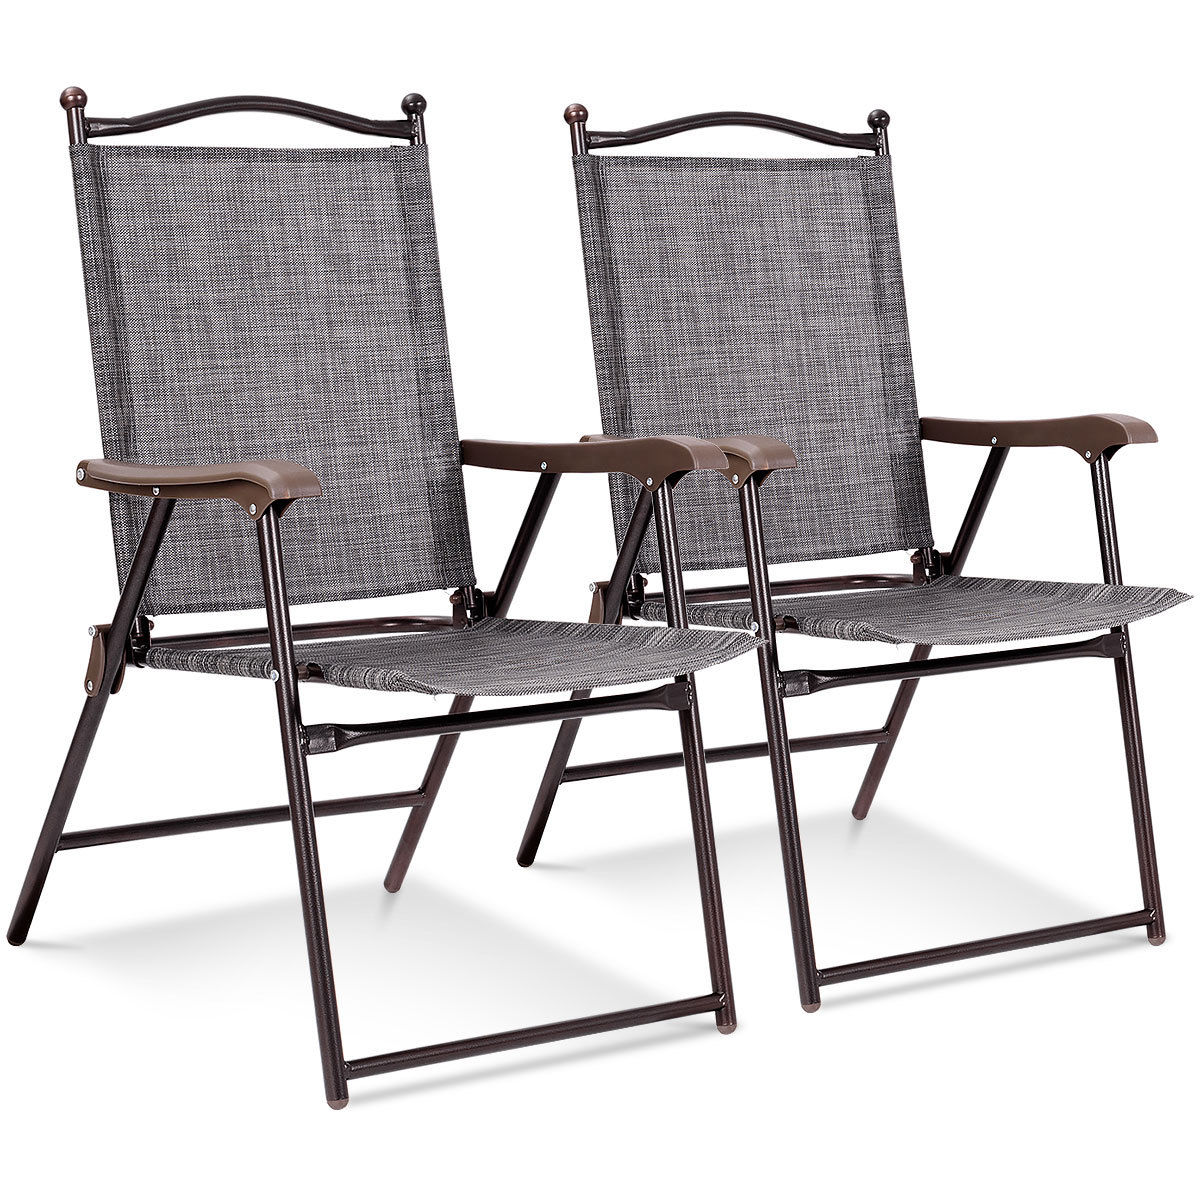 Patio Folding Chairs Costway Set Of 2 Patio Folding Sling Back Chairs Camping Deck Garden Beach Gray